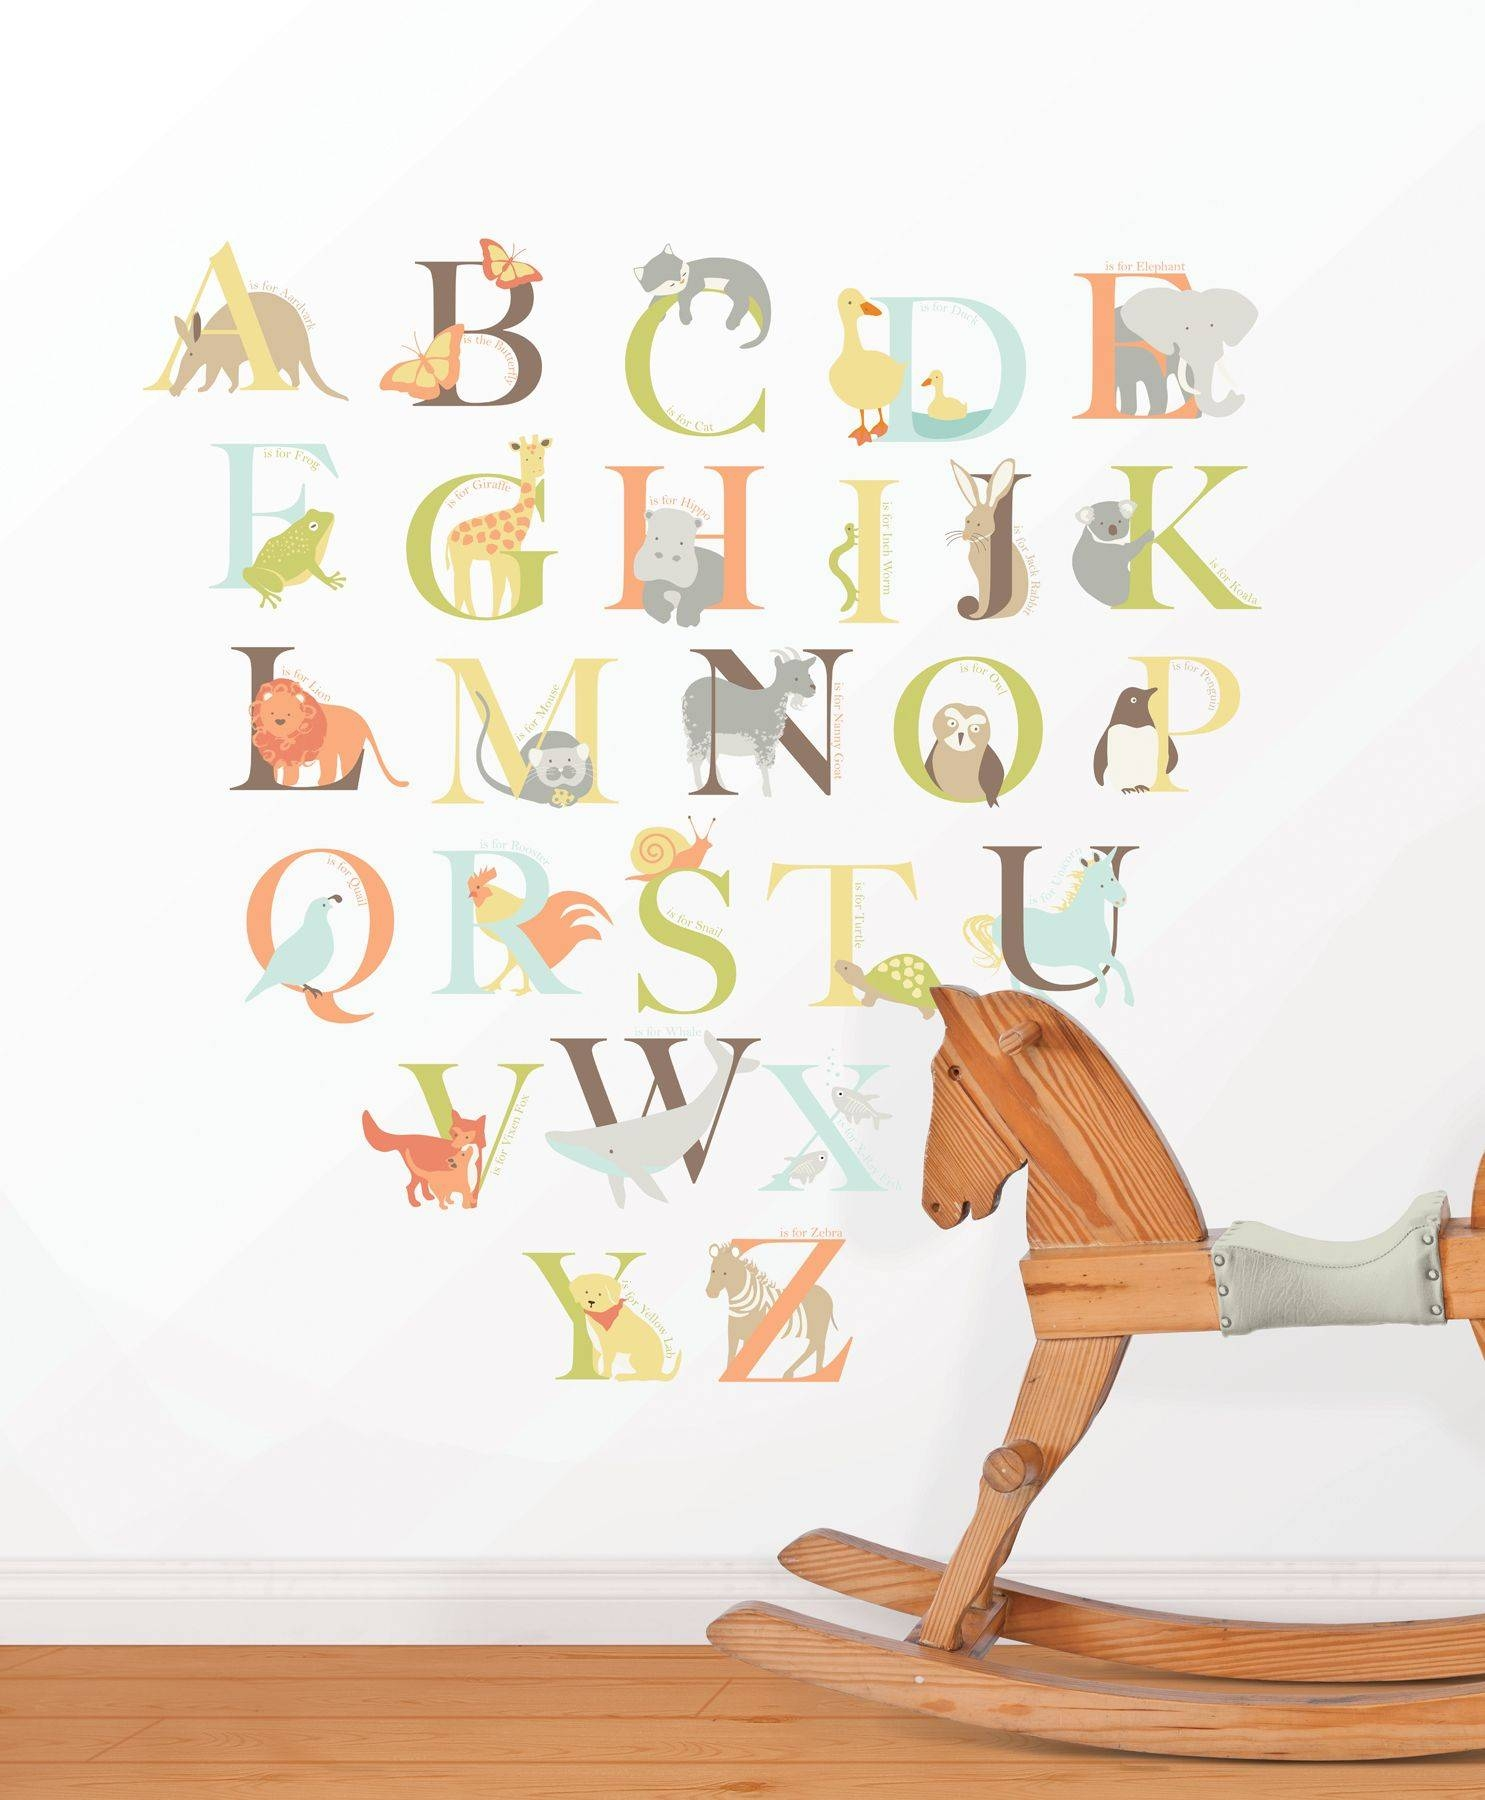 Alphabet Zoo Wall Art Sticker Kit With Regard To Most Recent Animal Wall ArtStickers (View 4 of 20)